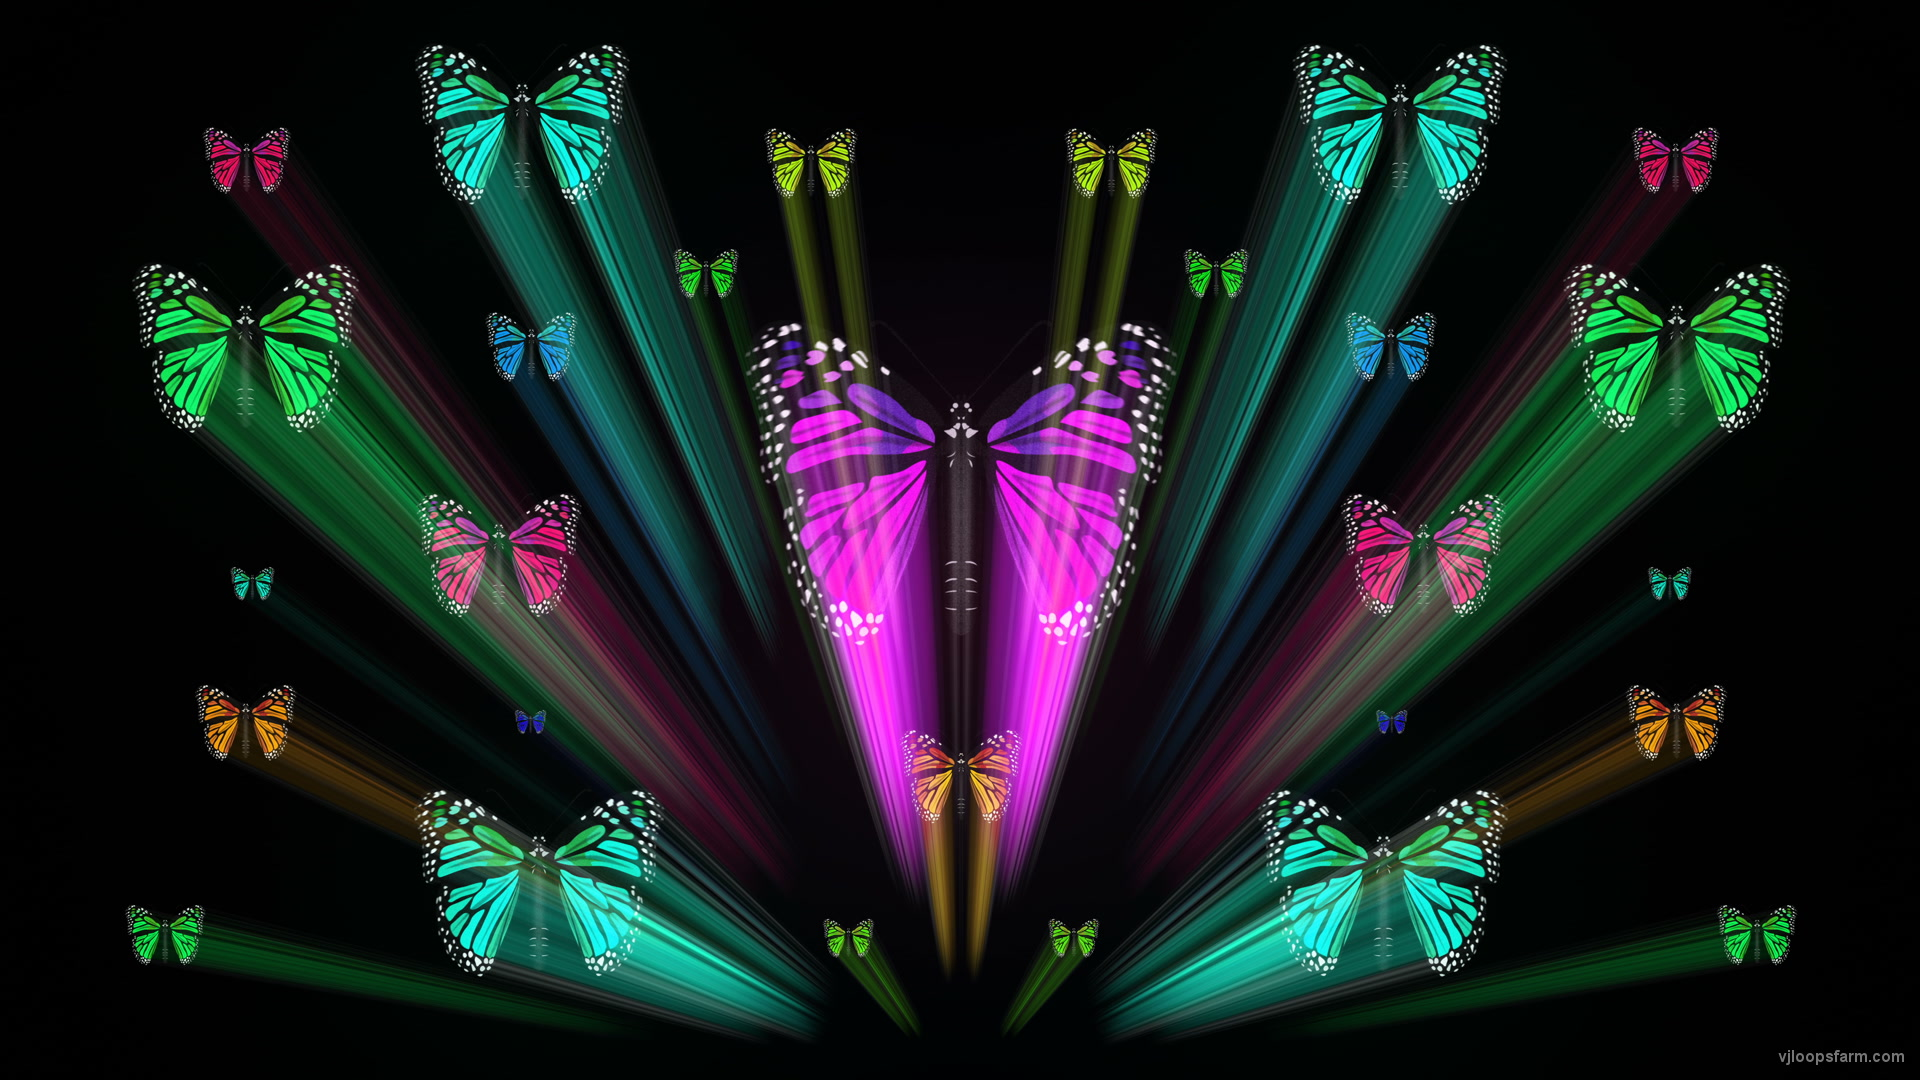 vj video background Colorful-Rays-Center-Stage-glow-Butterflies-insects-pattern-4K-Video-Art-VJ-Loop_003